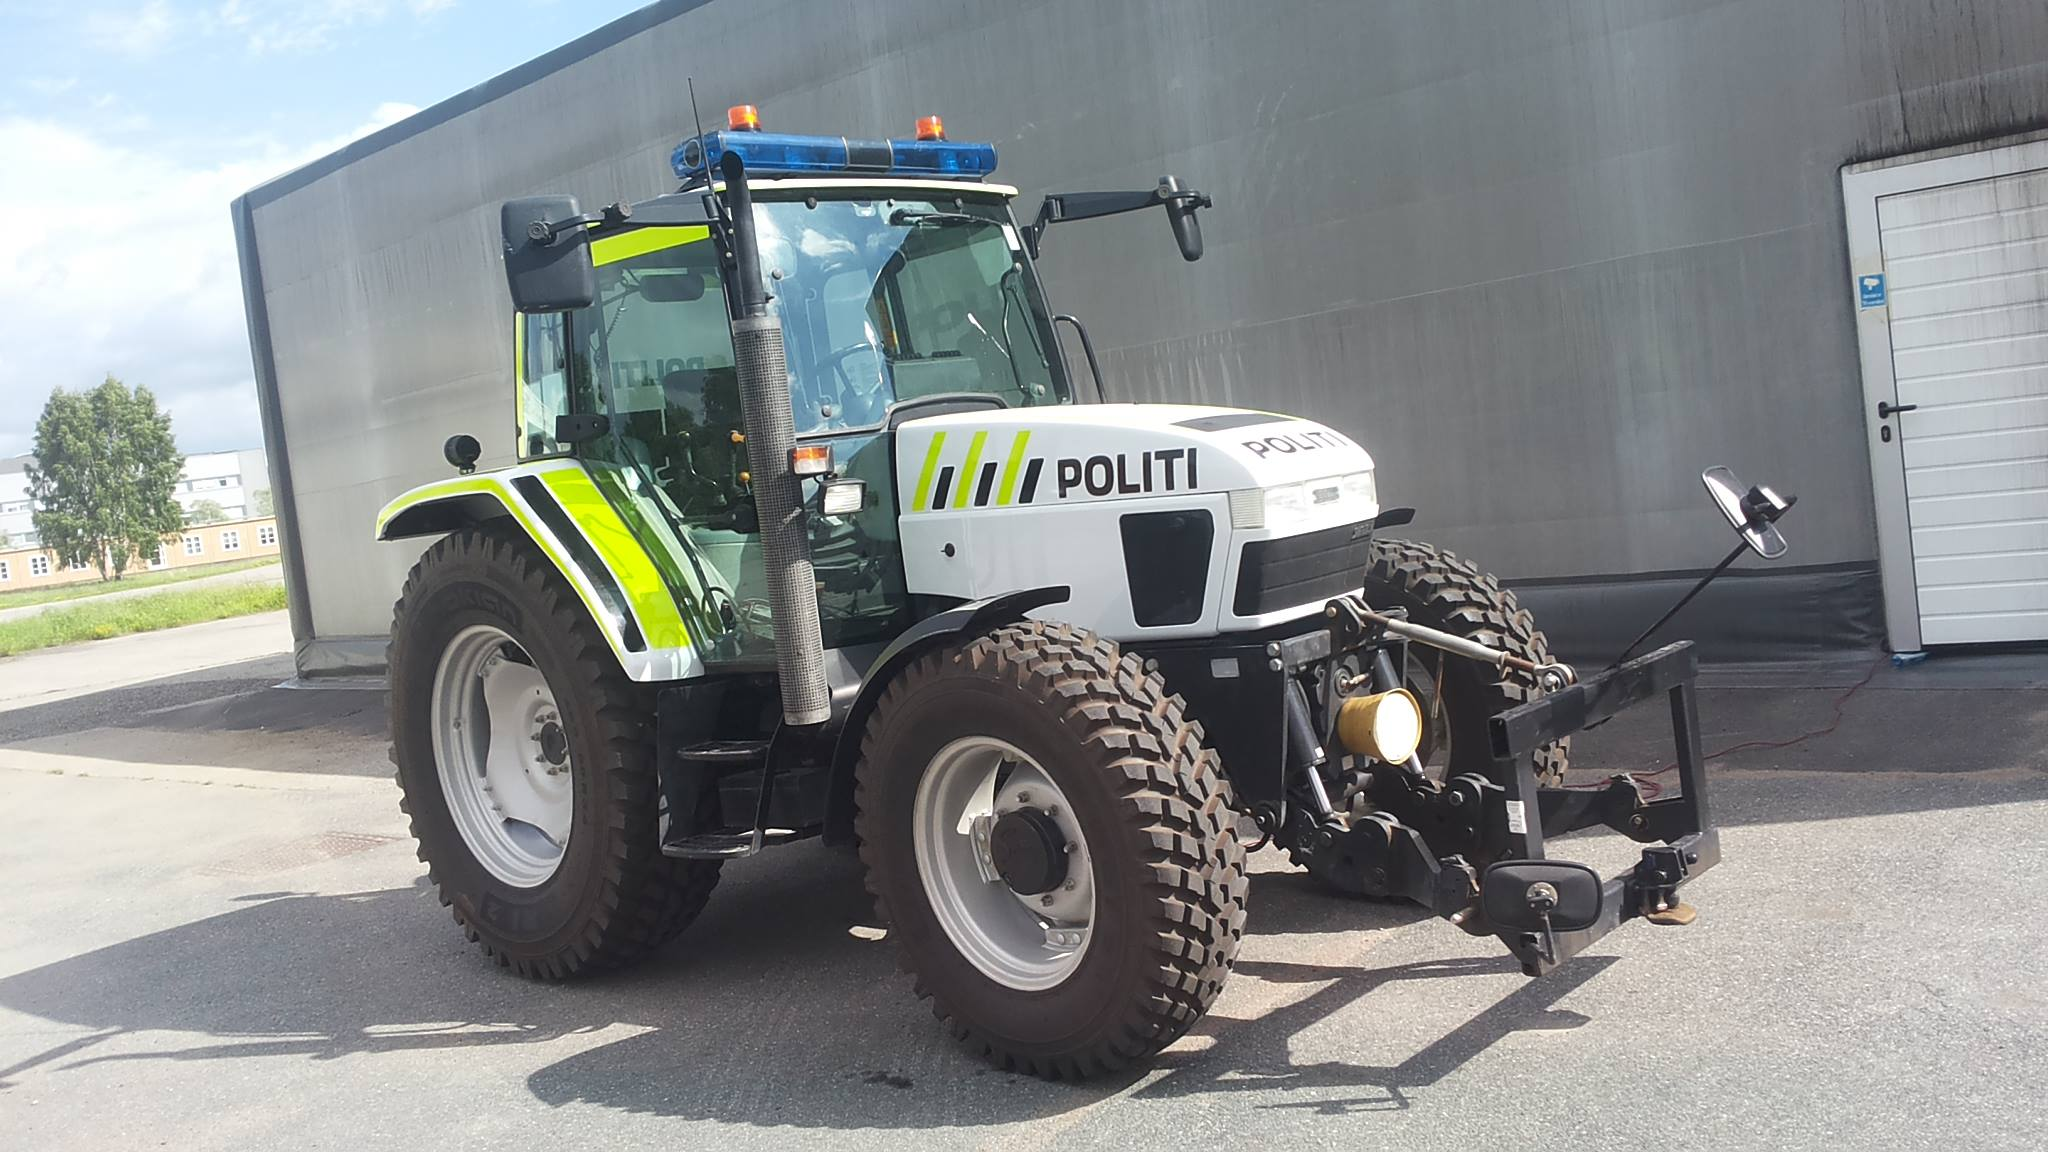 New Police Vehicles in Norway... Working at the main airport in ...